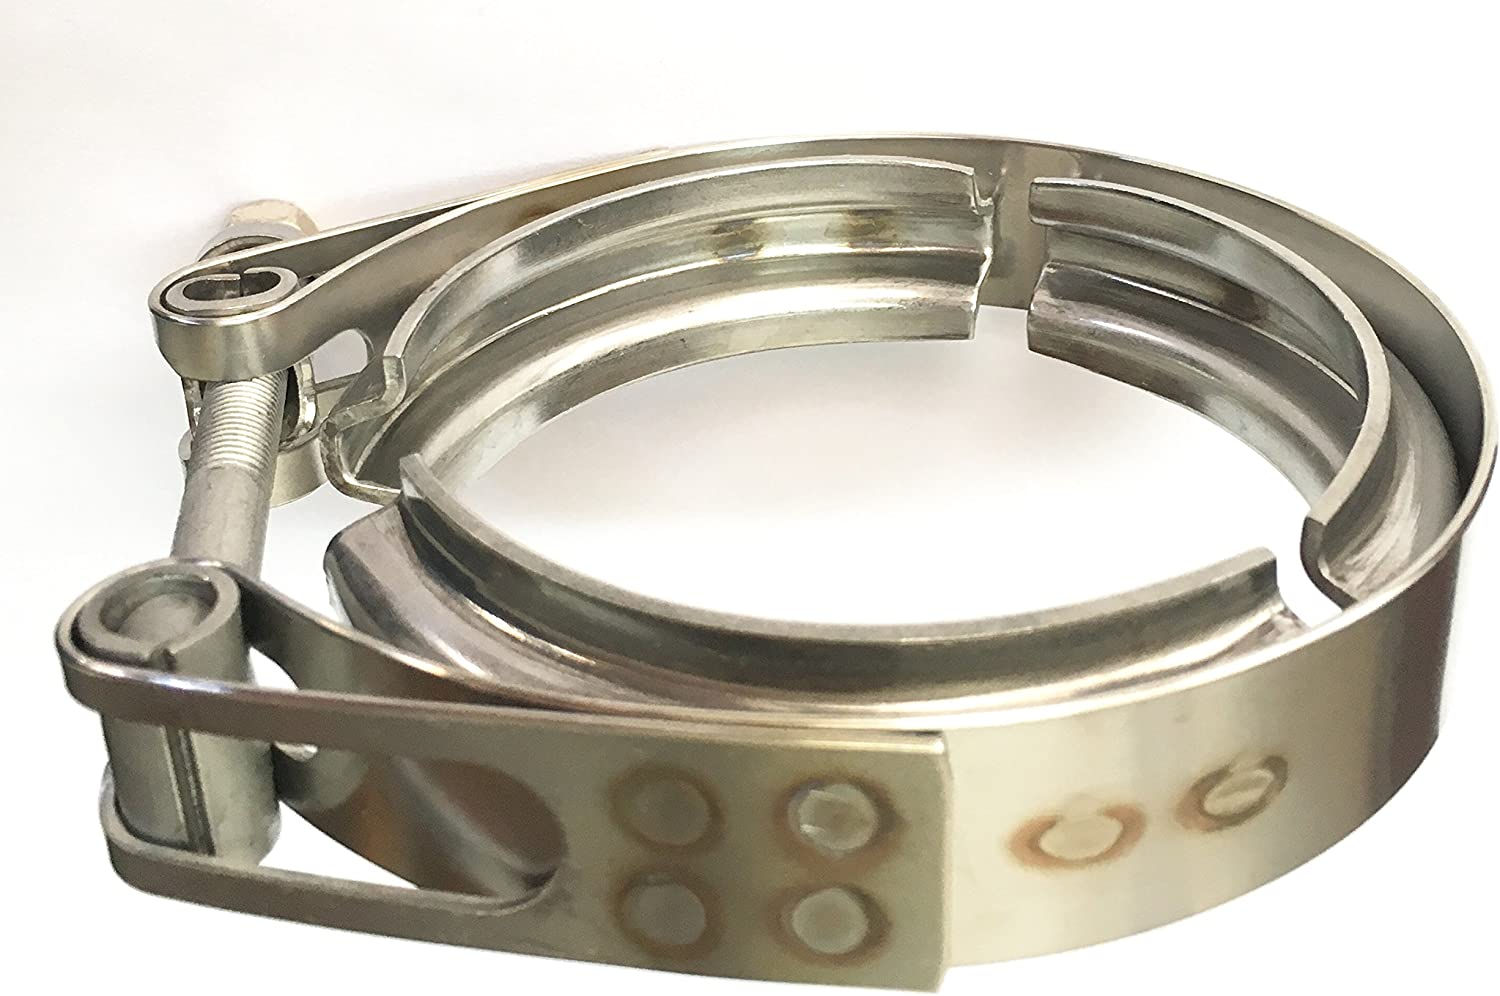 OBX Universal Stainless Steel V-Band VBand Clamp 2.75-3.06